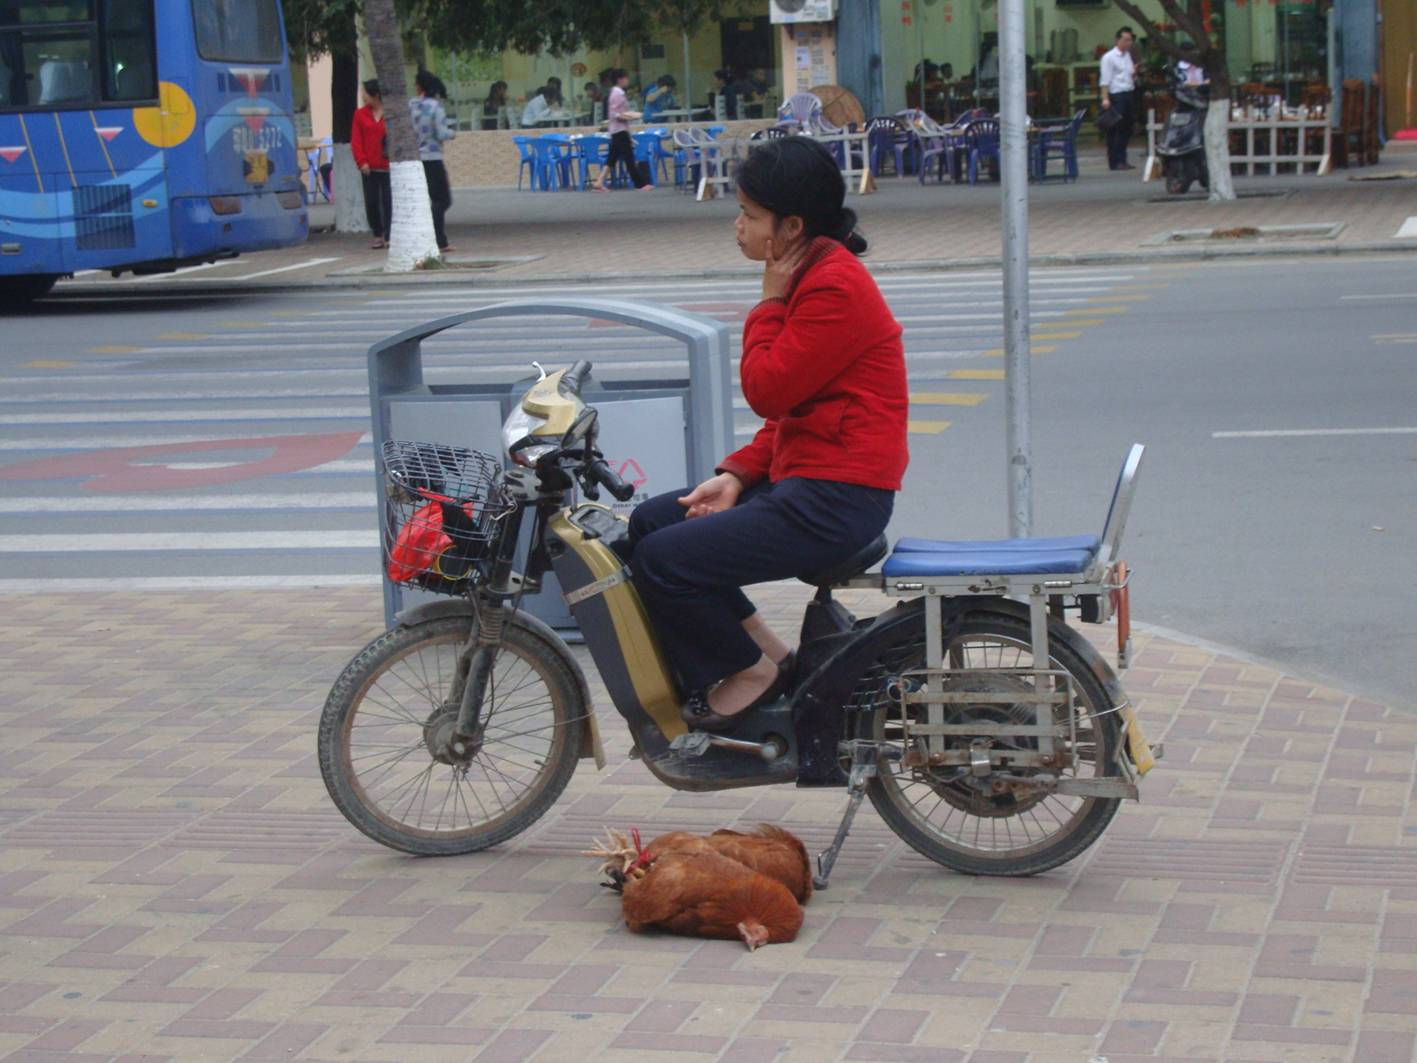 Picture:  Two trussed chickens await their fate while another bored Sanya resident awaits delivery instructions.  Sanya, Hainan Island, China